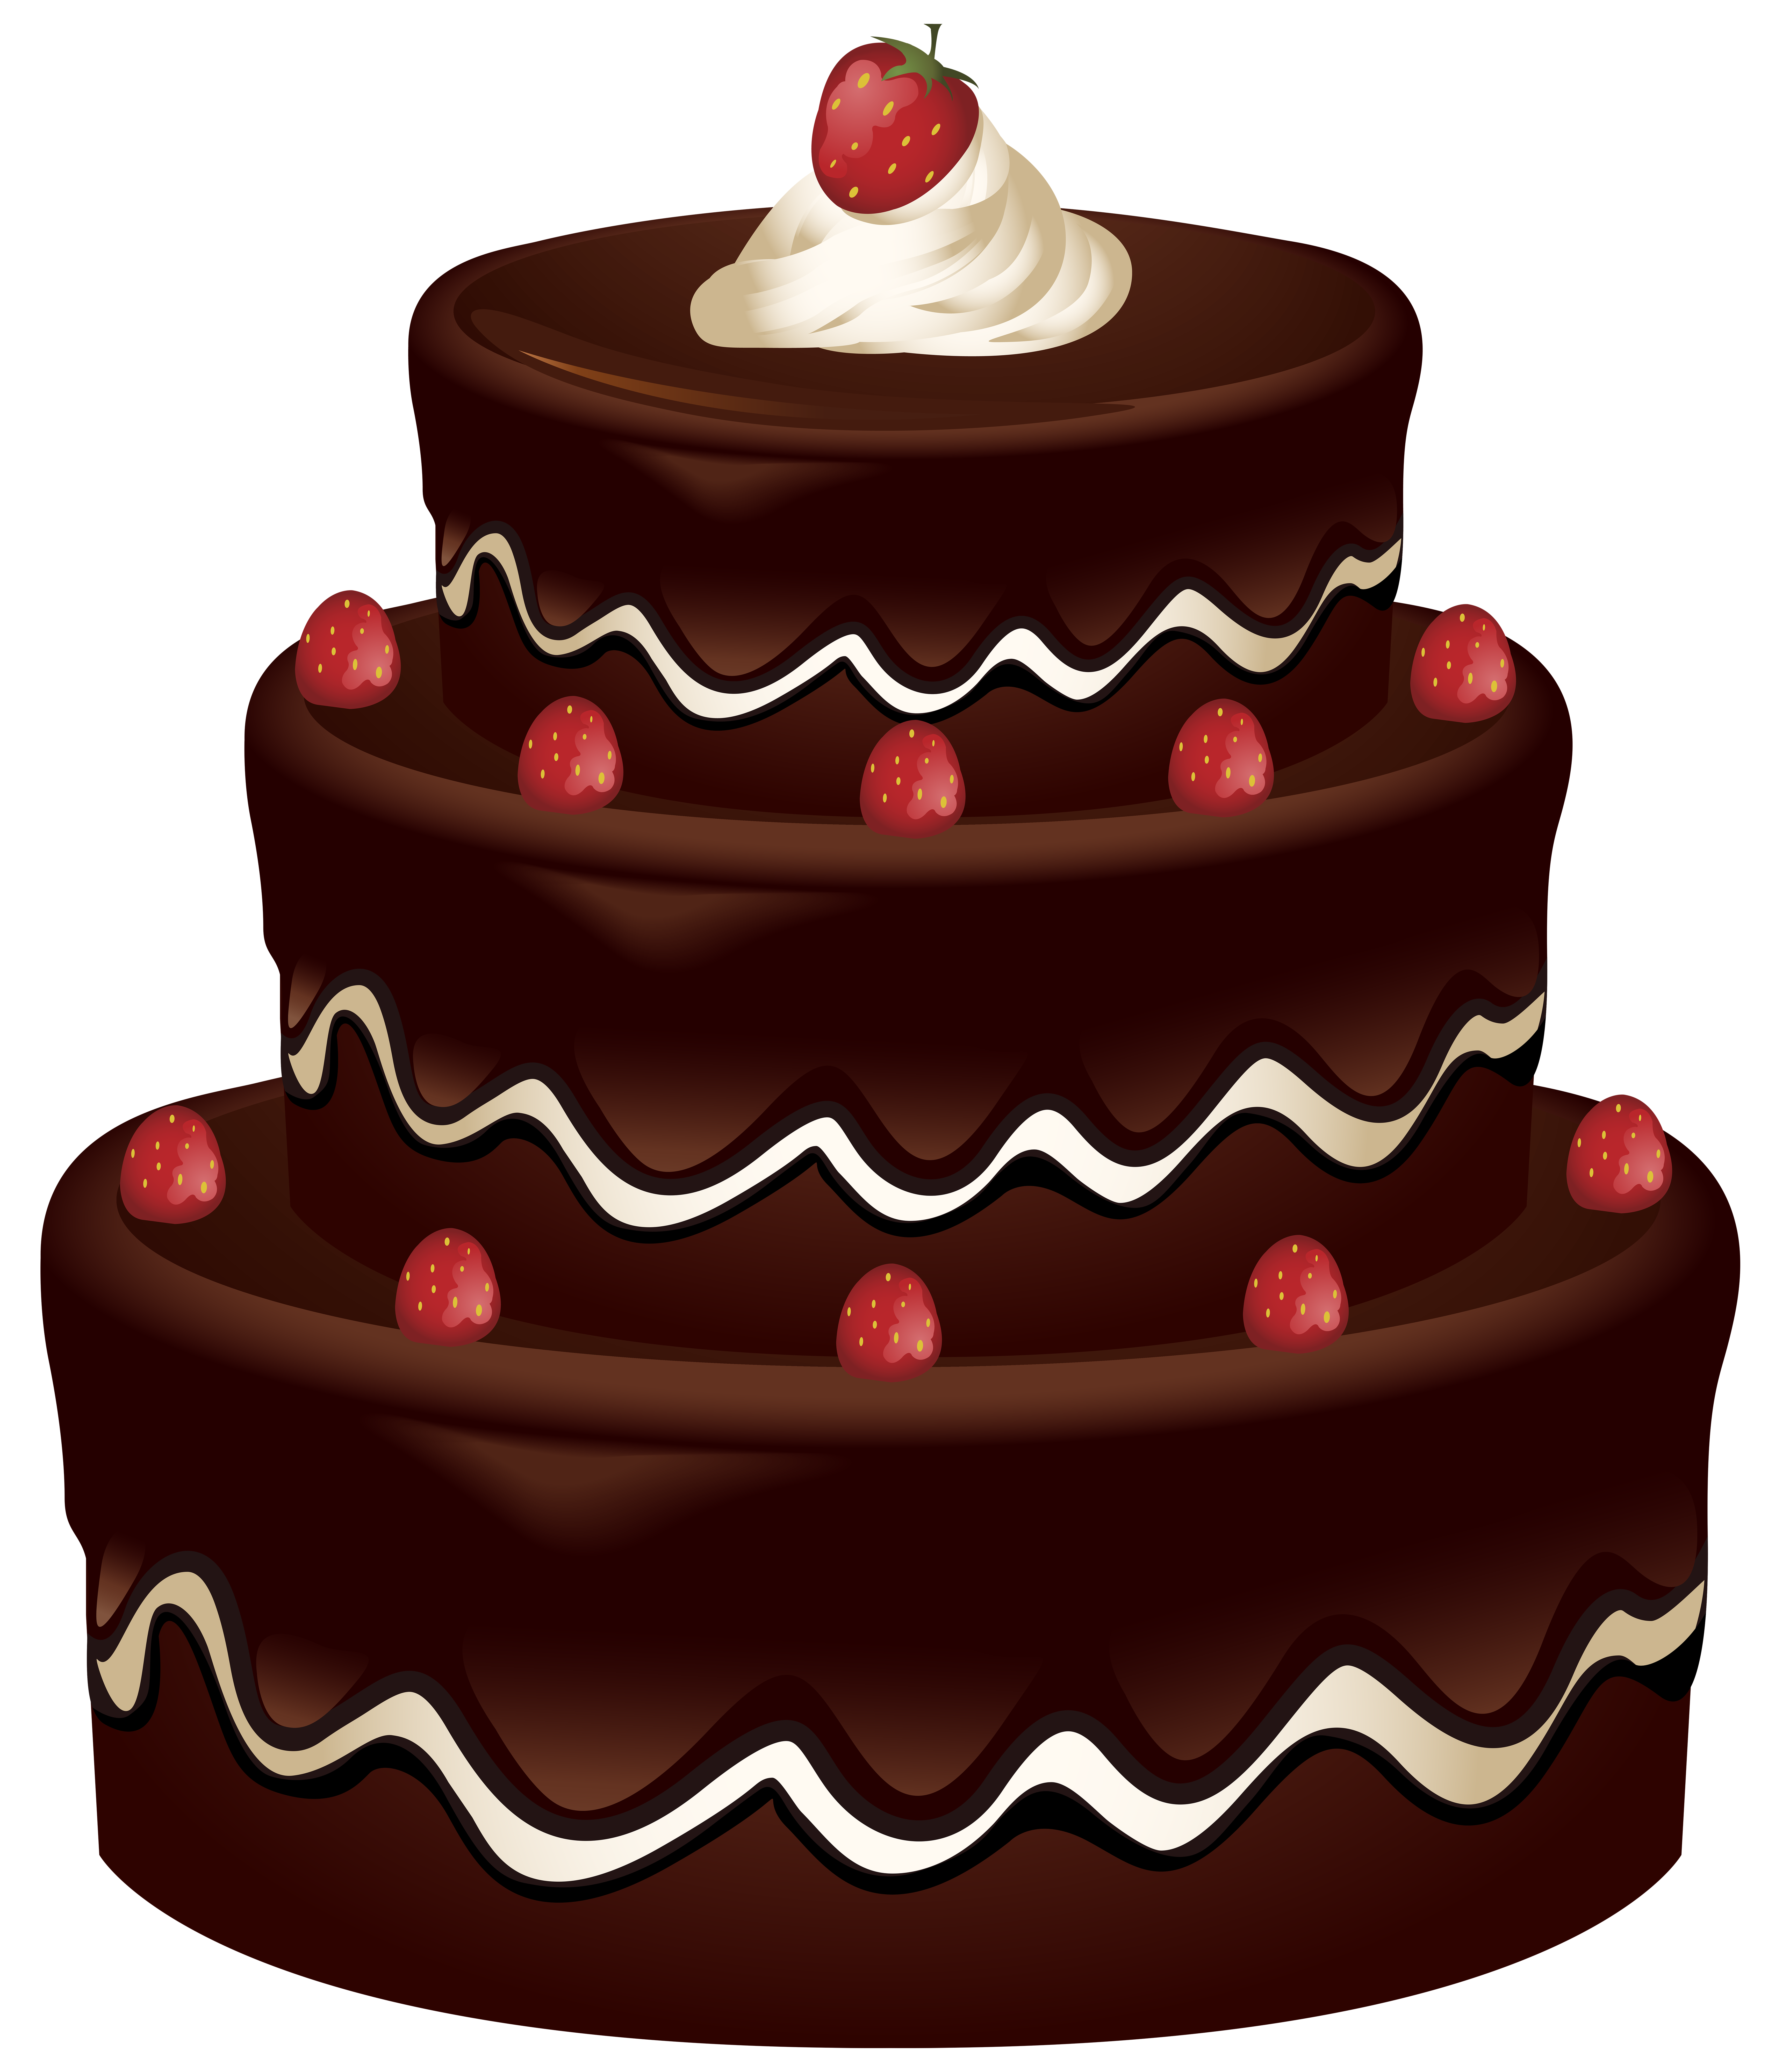 Cake clipart. Clip art png image